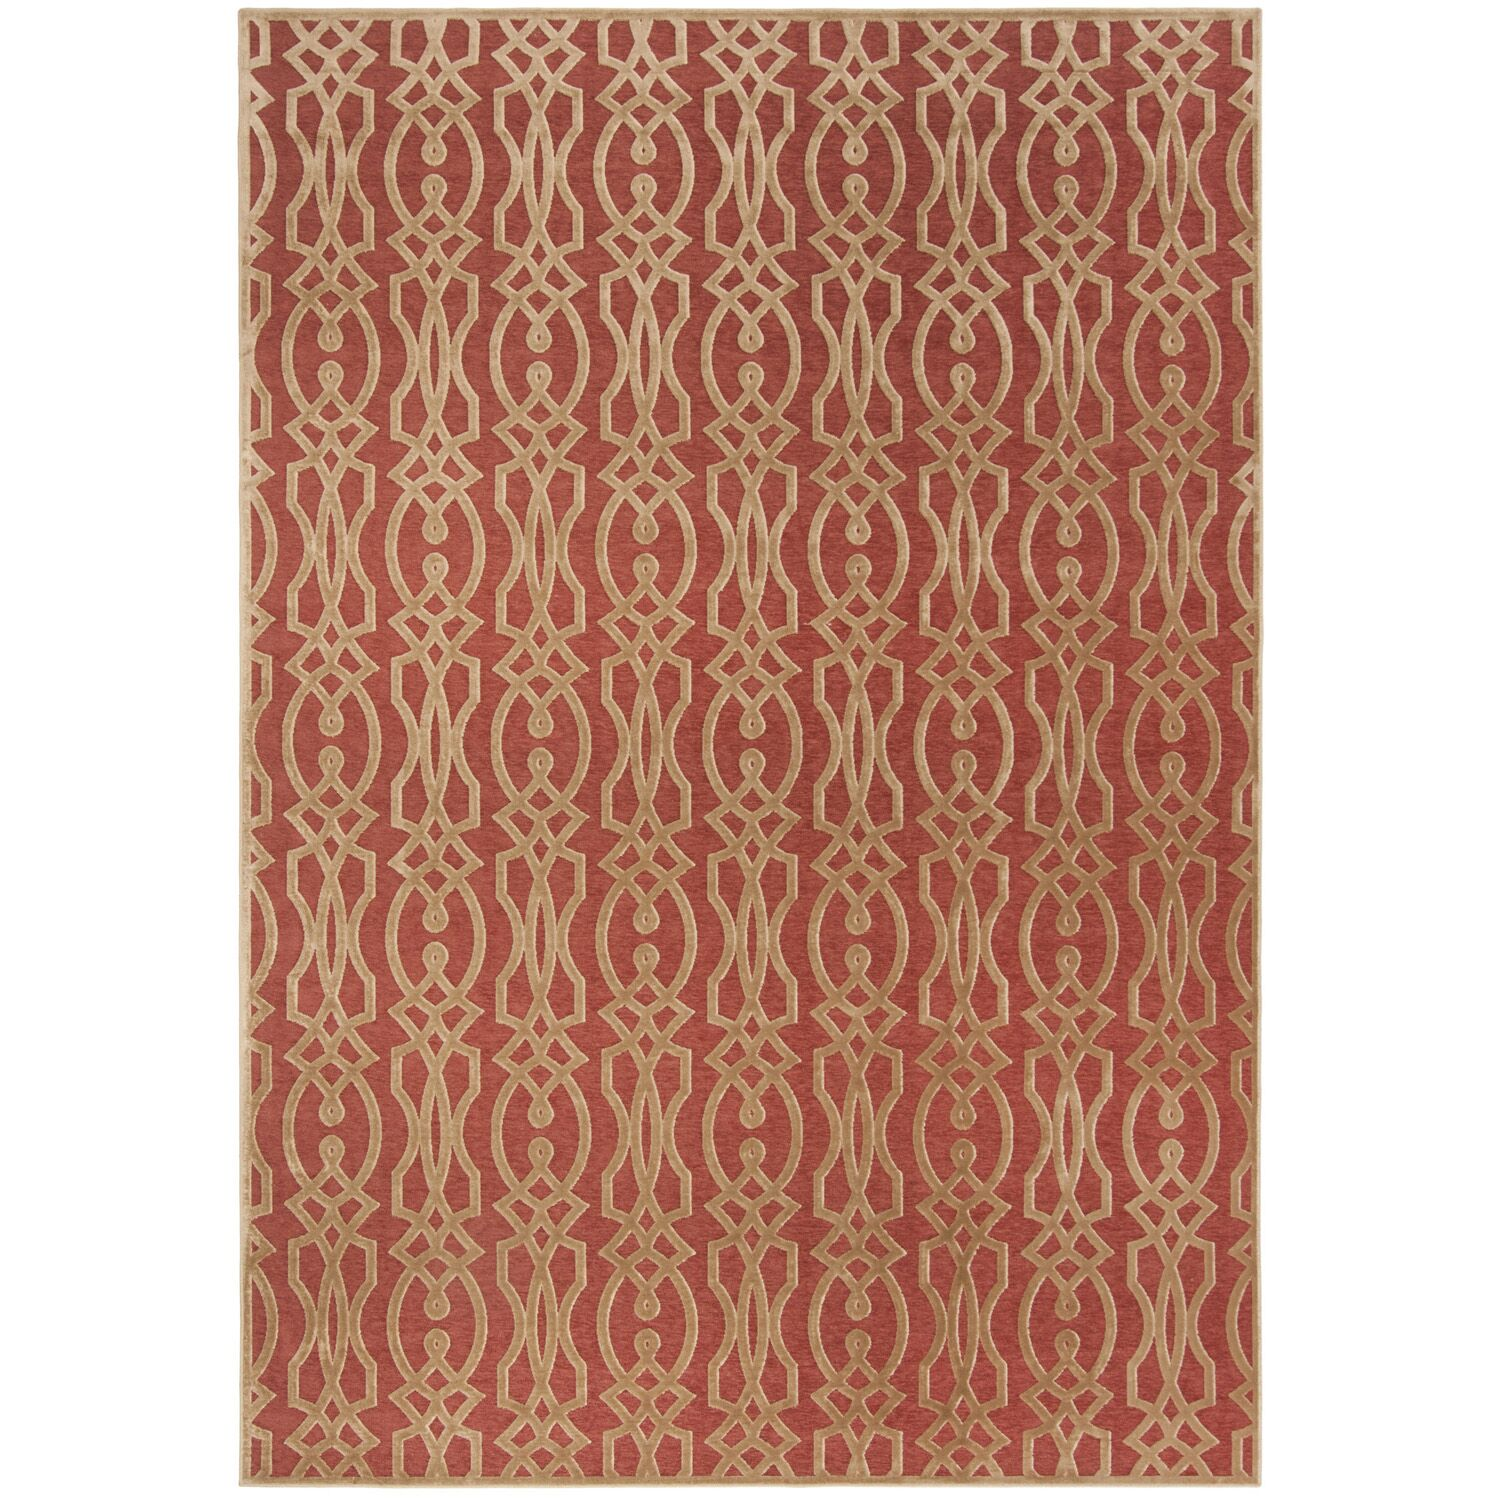 Villa Screen Red/Brown Area Rug Rug Size: Rectangle 8' x 11'2